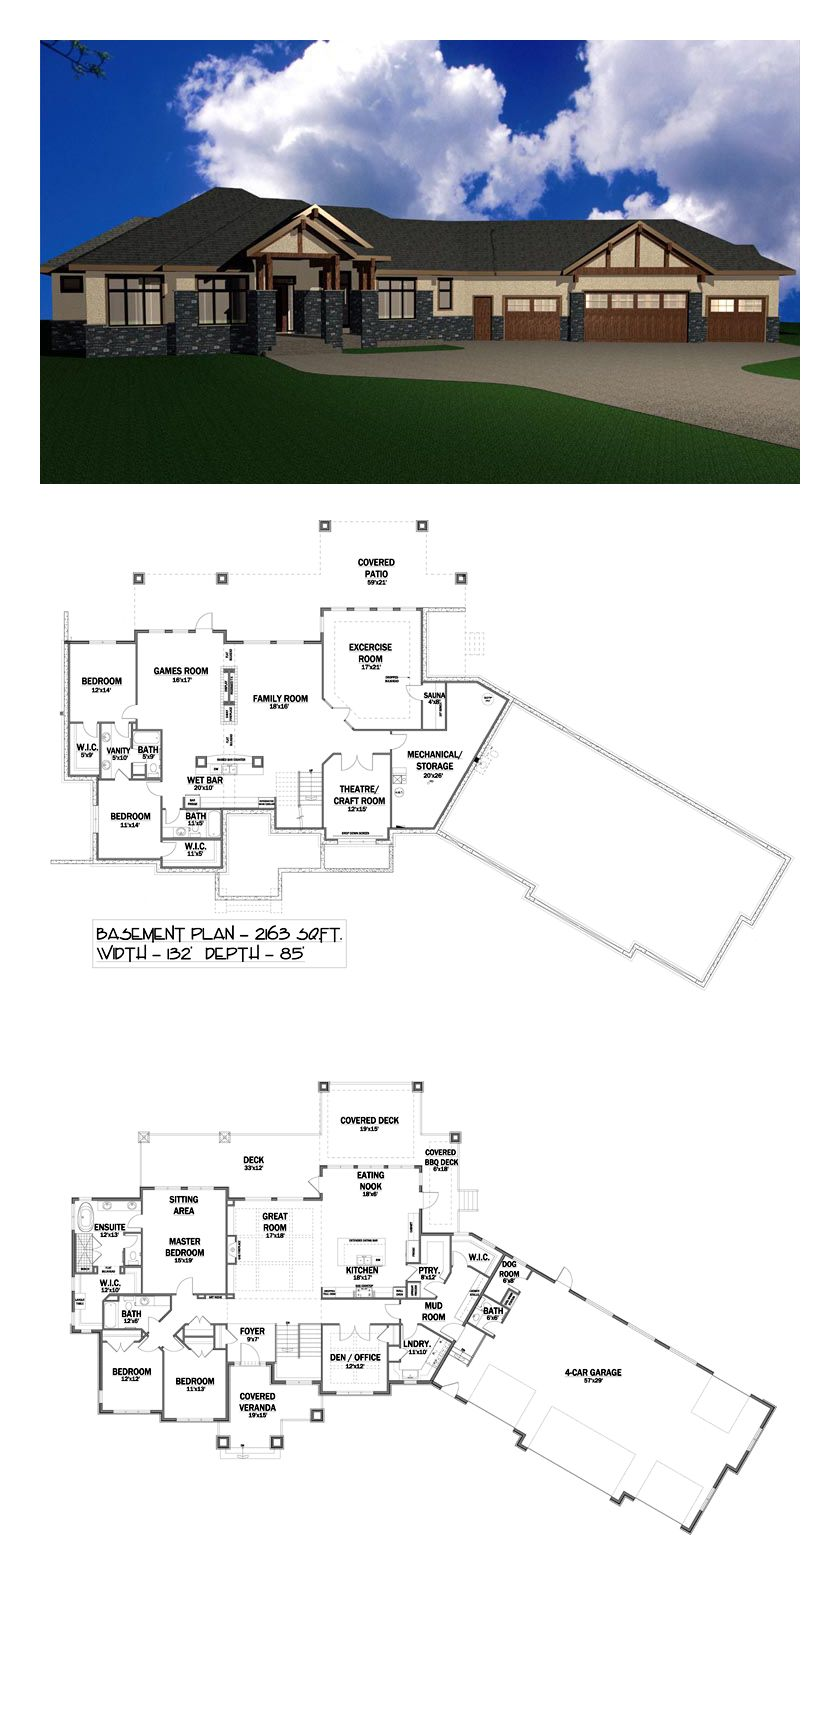 1697 Sq Ft Bungalow House Plan With A Walk Out Basement Open Floor Plan And Angled 2 Car Garage Bungalow Floor Plans Basement House Plans Garage House Plans